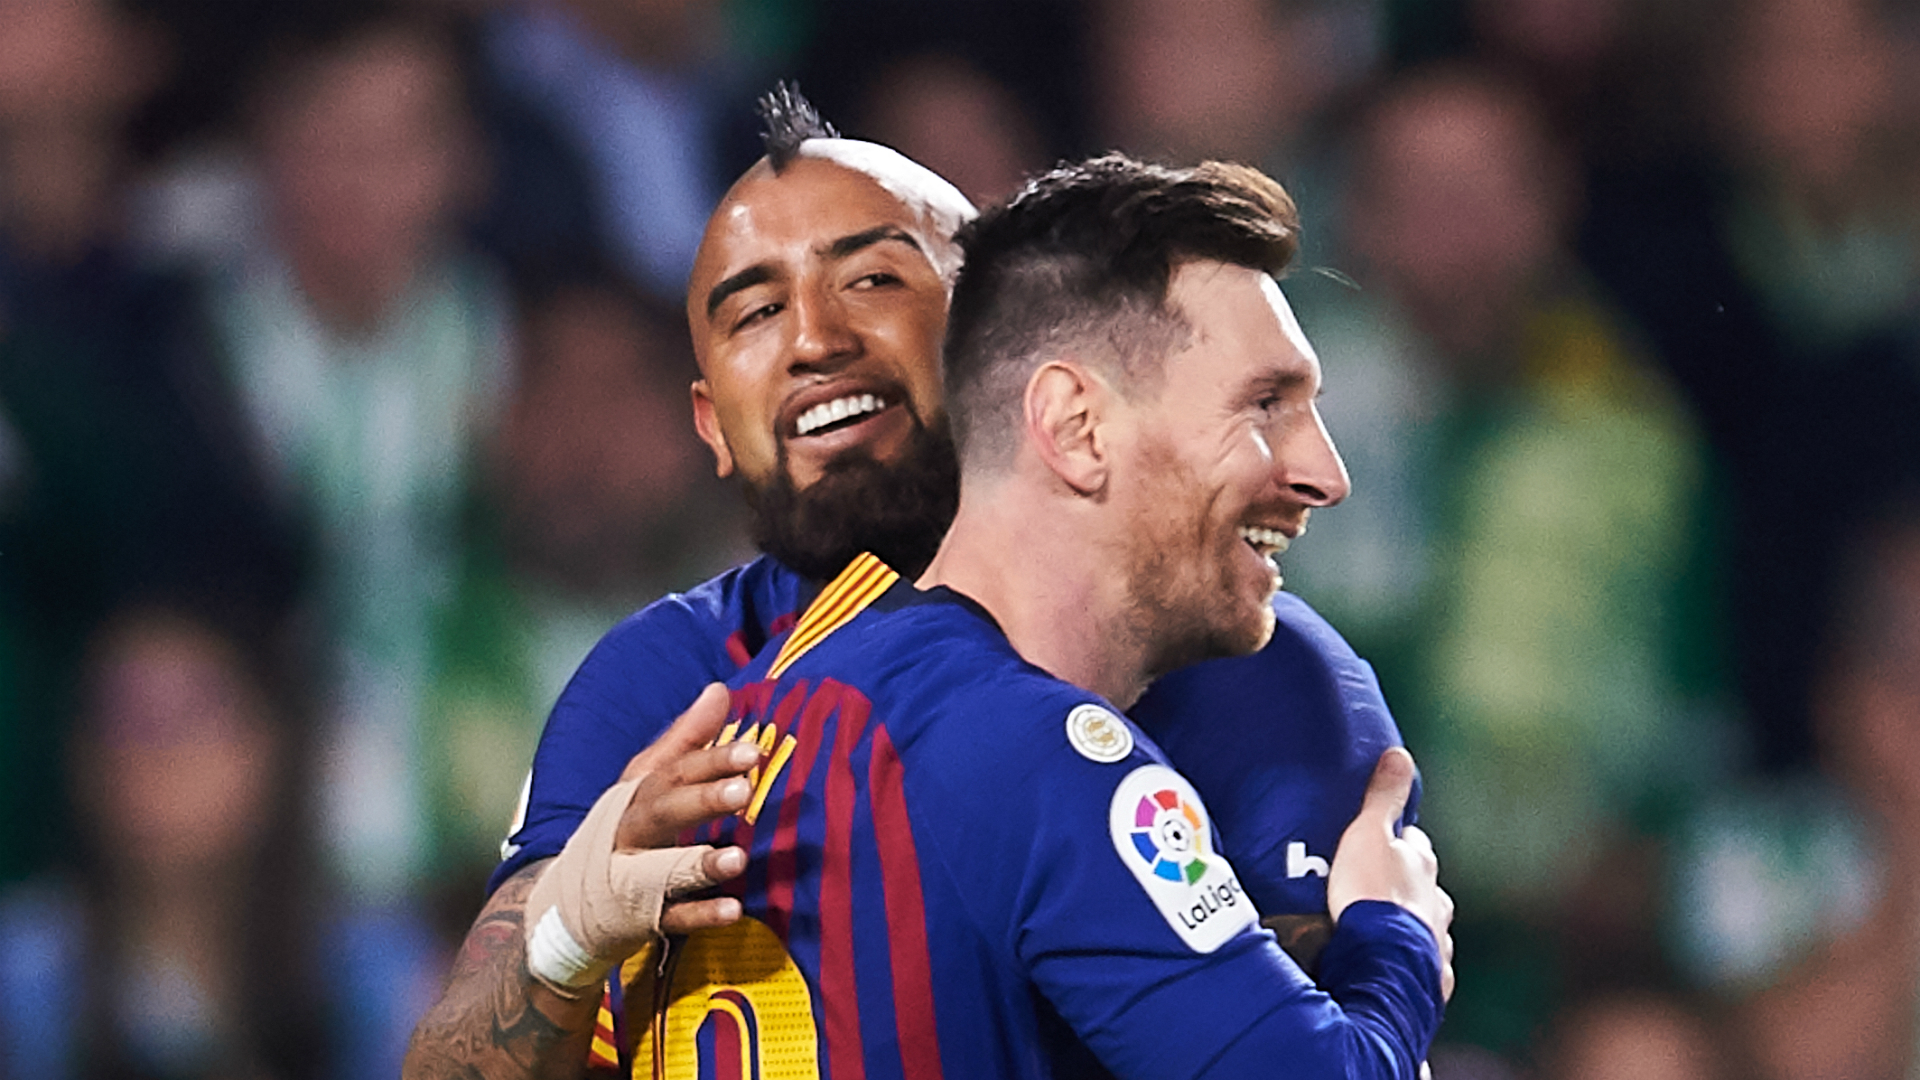 Messi humbled by Real Betis fans' standing ovation after hat-trick